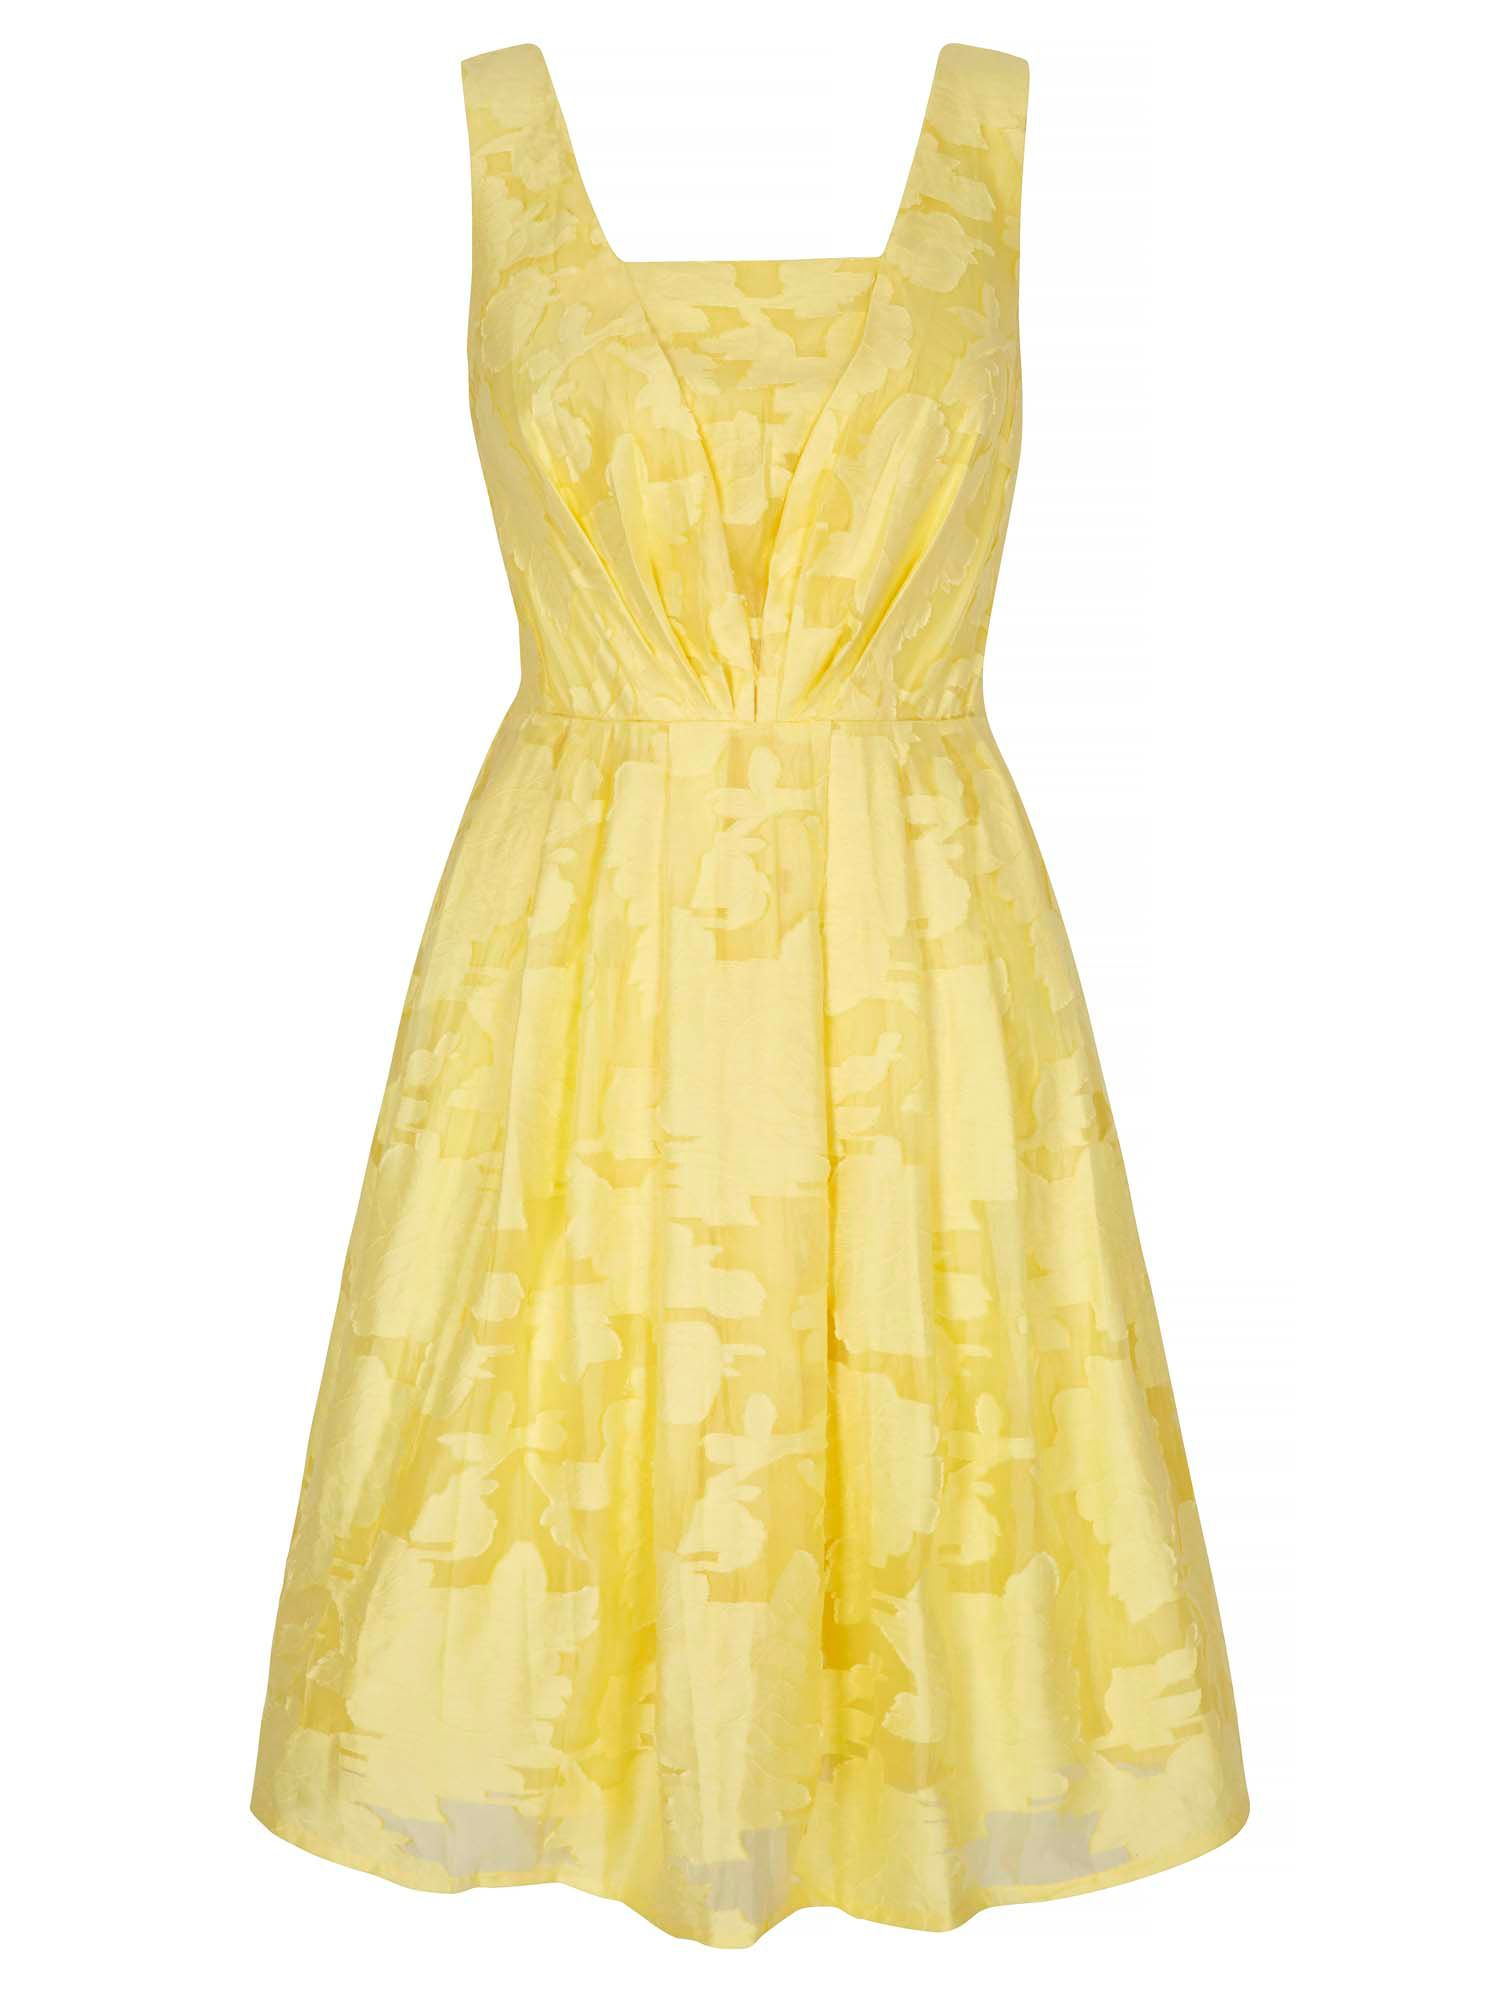 Yumi Floral Jacquard Party Dress, Yellow